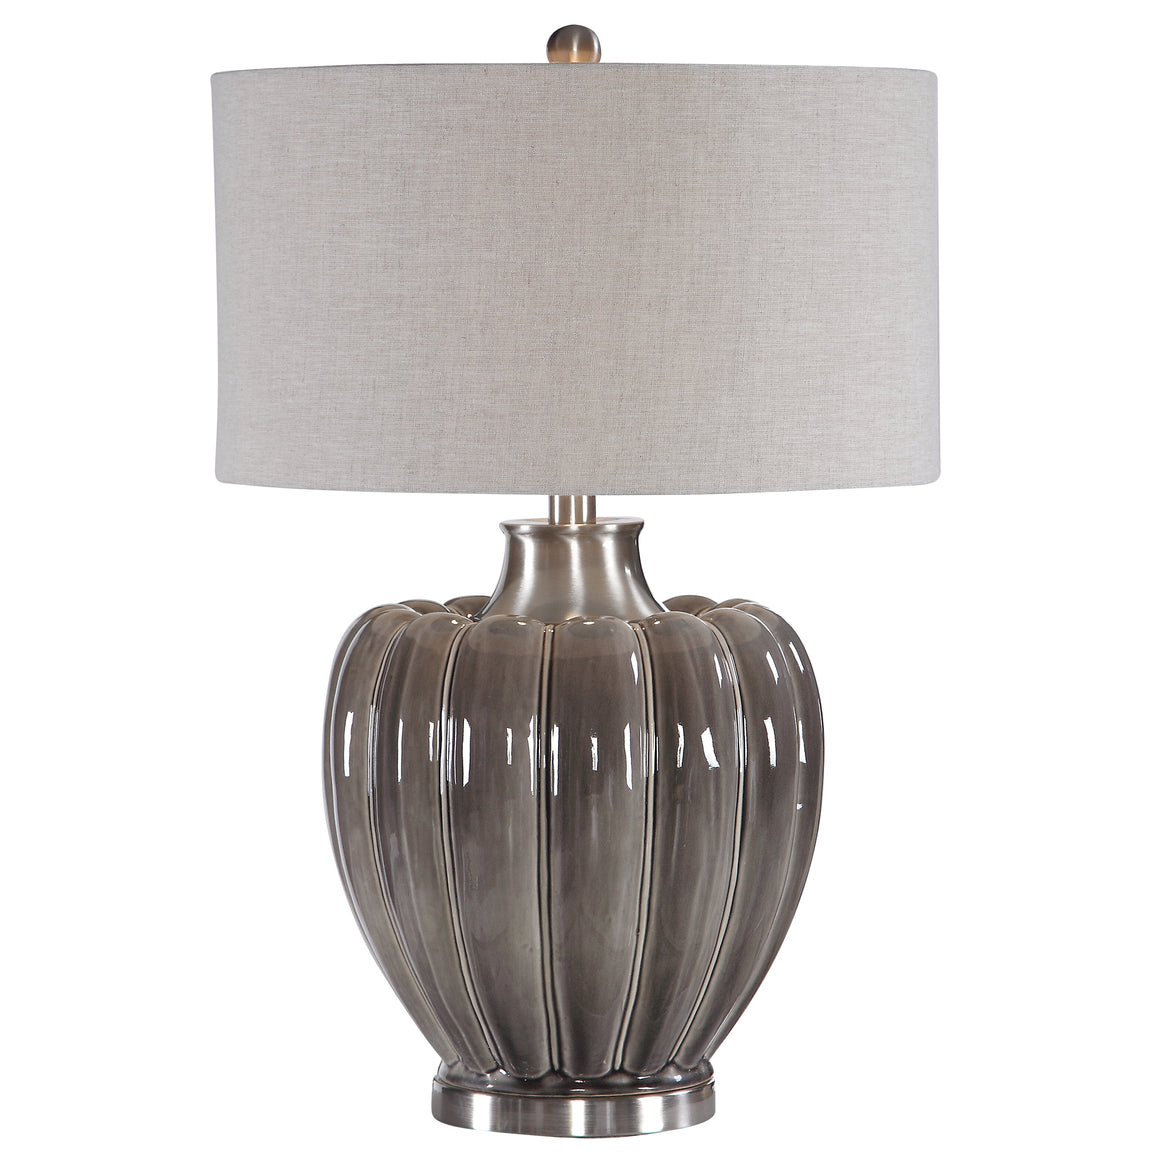 Adler Smoky Gray Table Lamp